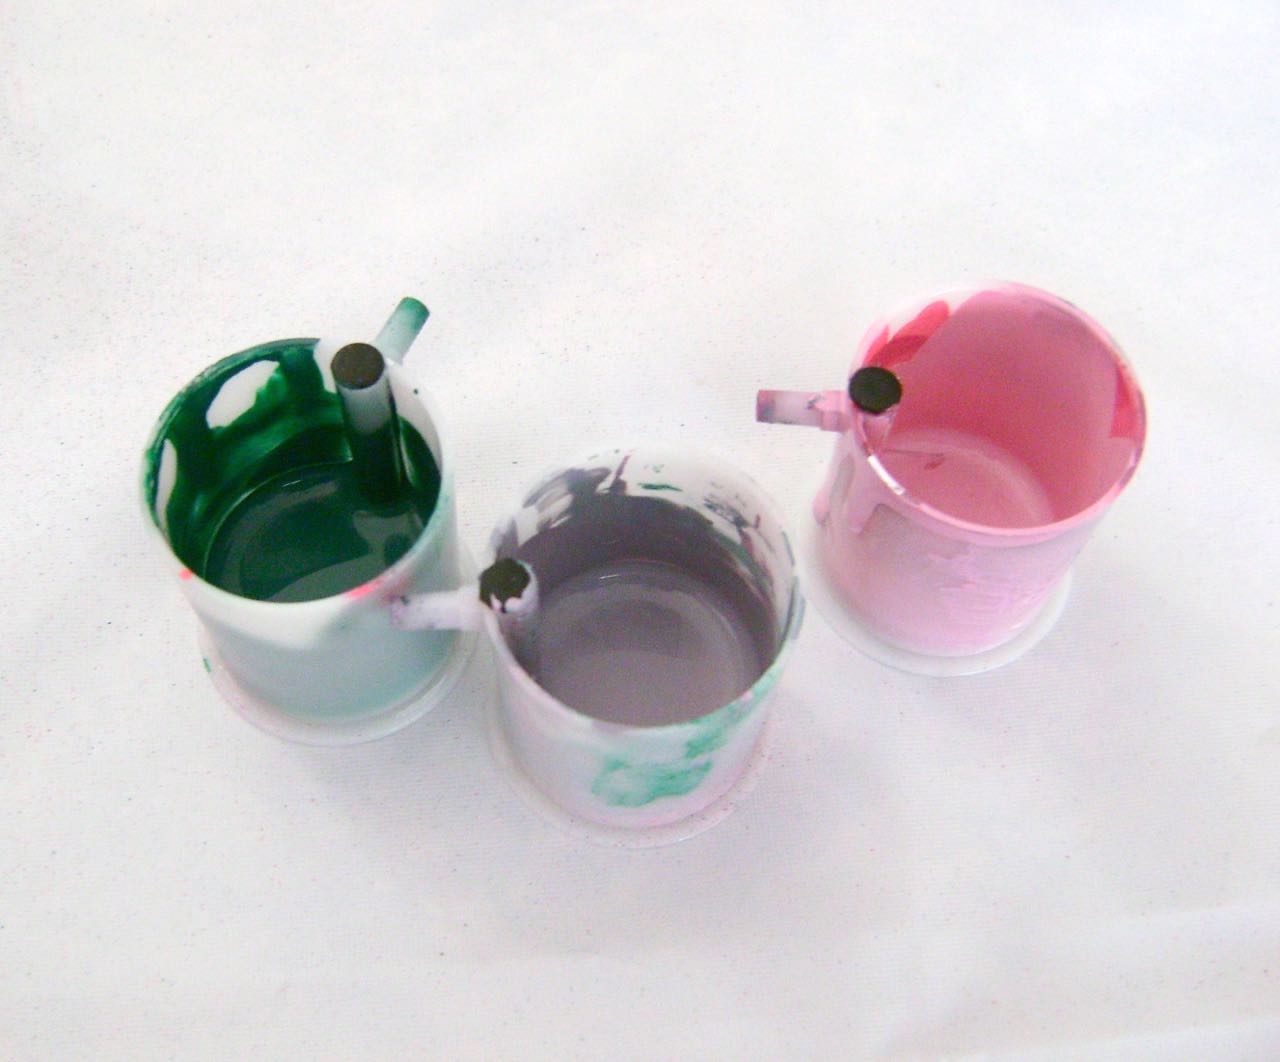 step 10 - Fill paint cups with the three colors.  Airbrush 1/3 of the hearts on both sides with the green blend, 1/3 with the pink blend and 1/3 with the mauve color.  When the paint is dry, very lightly dust the green hearts with pink.